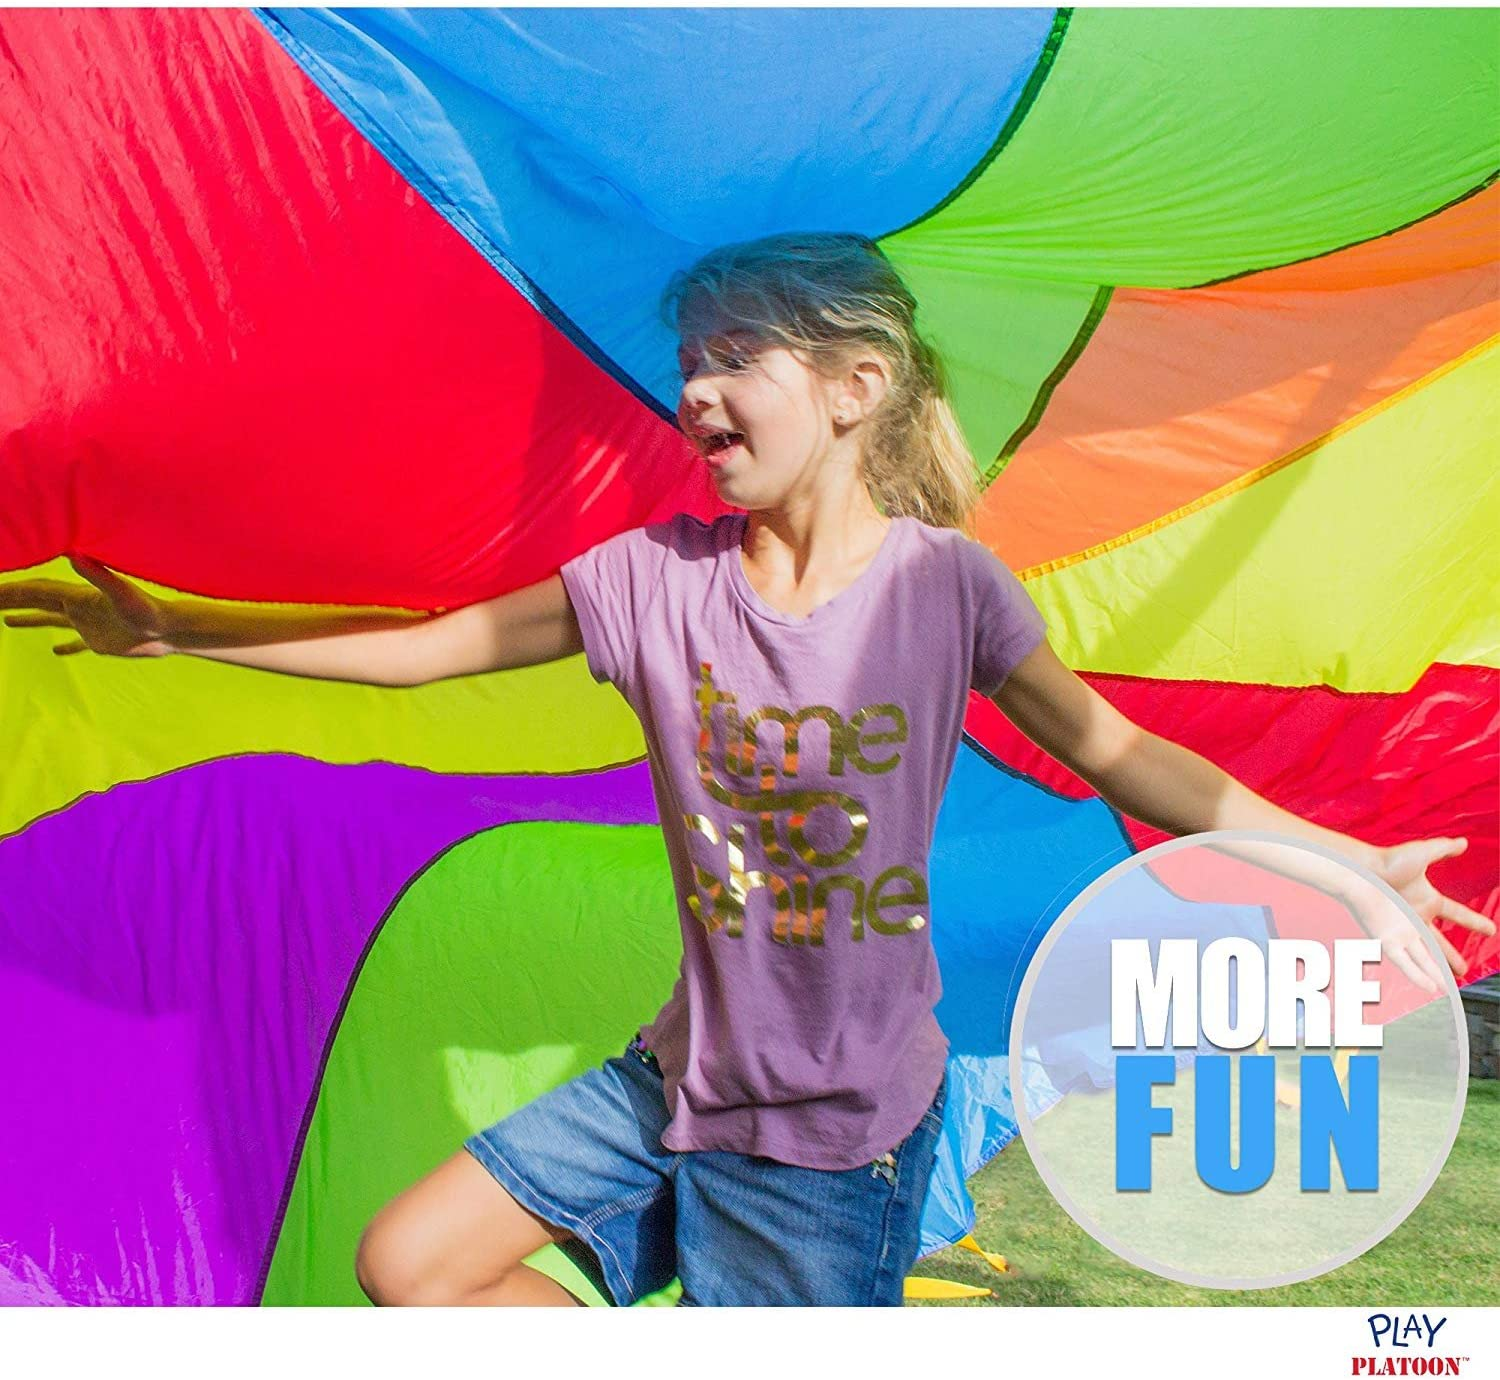 Multicolored Parachute for Kids 10 Foot Play Parachute with 10 Handles